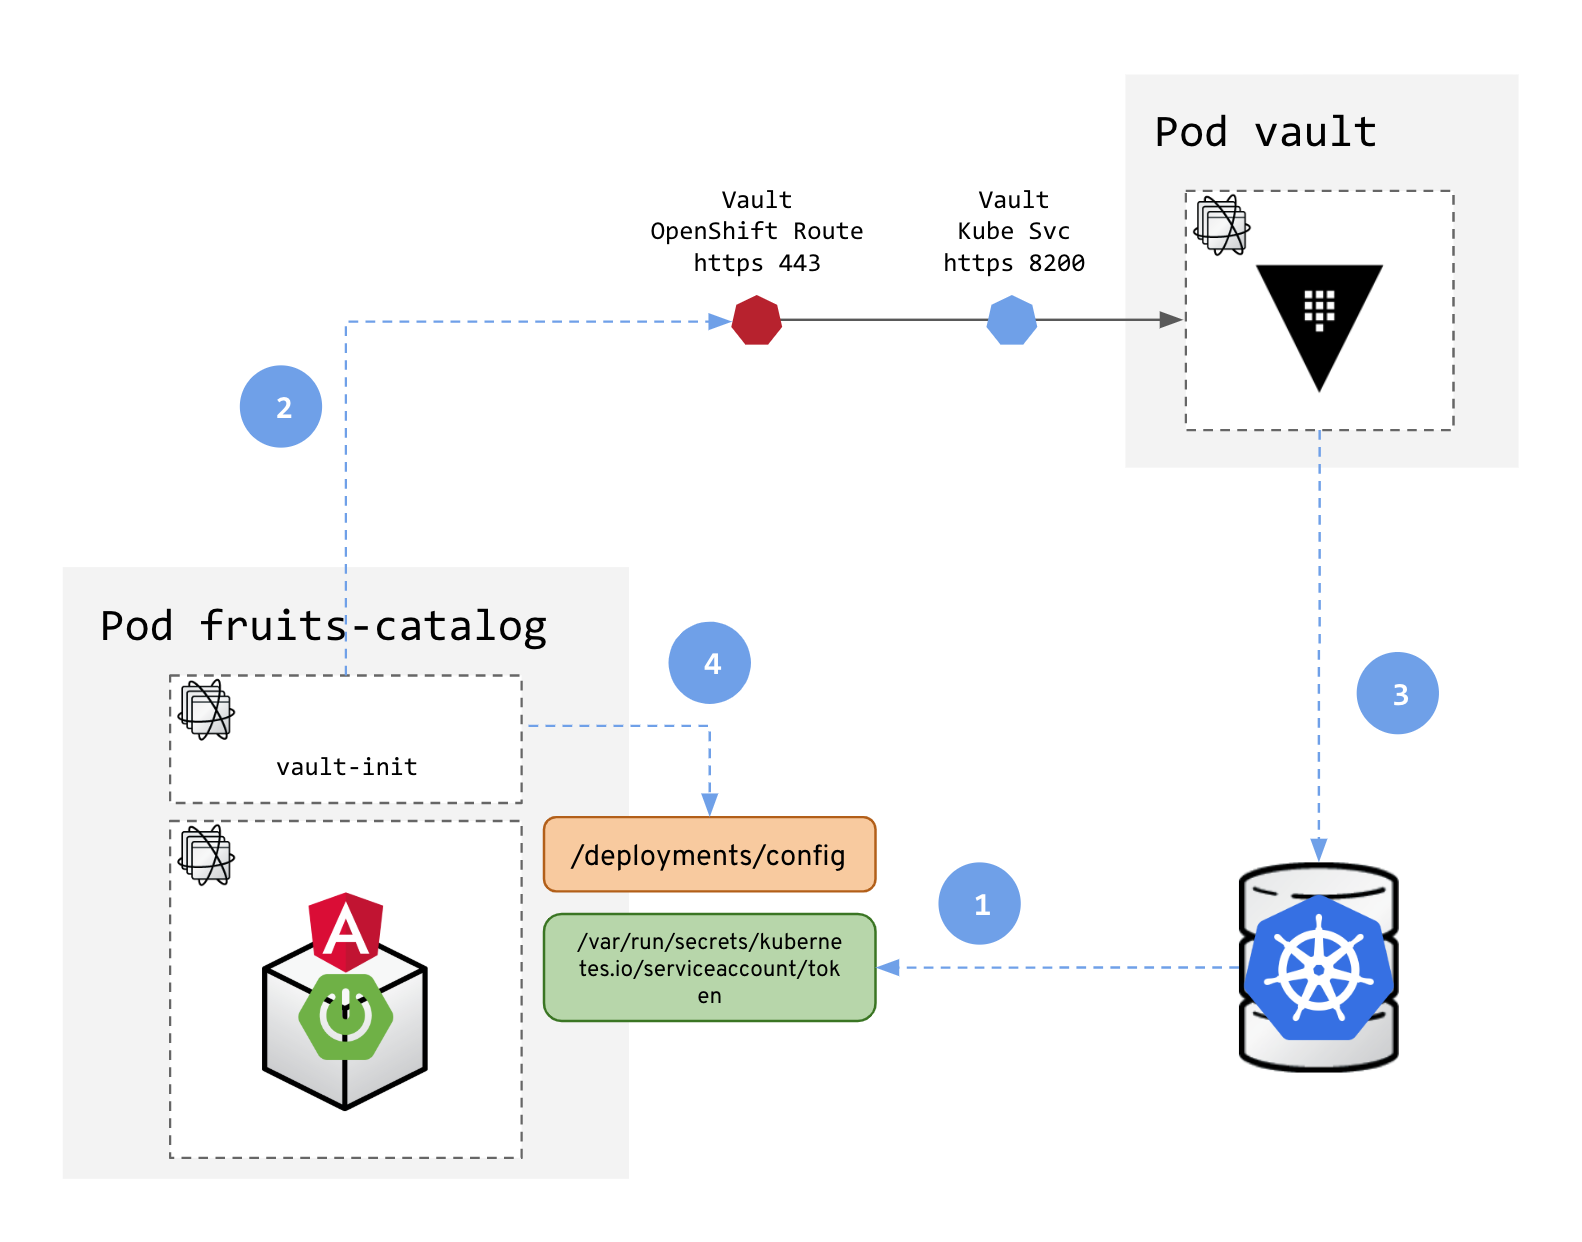 Adding security layers to your App on OpenShift — Part 3